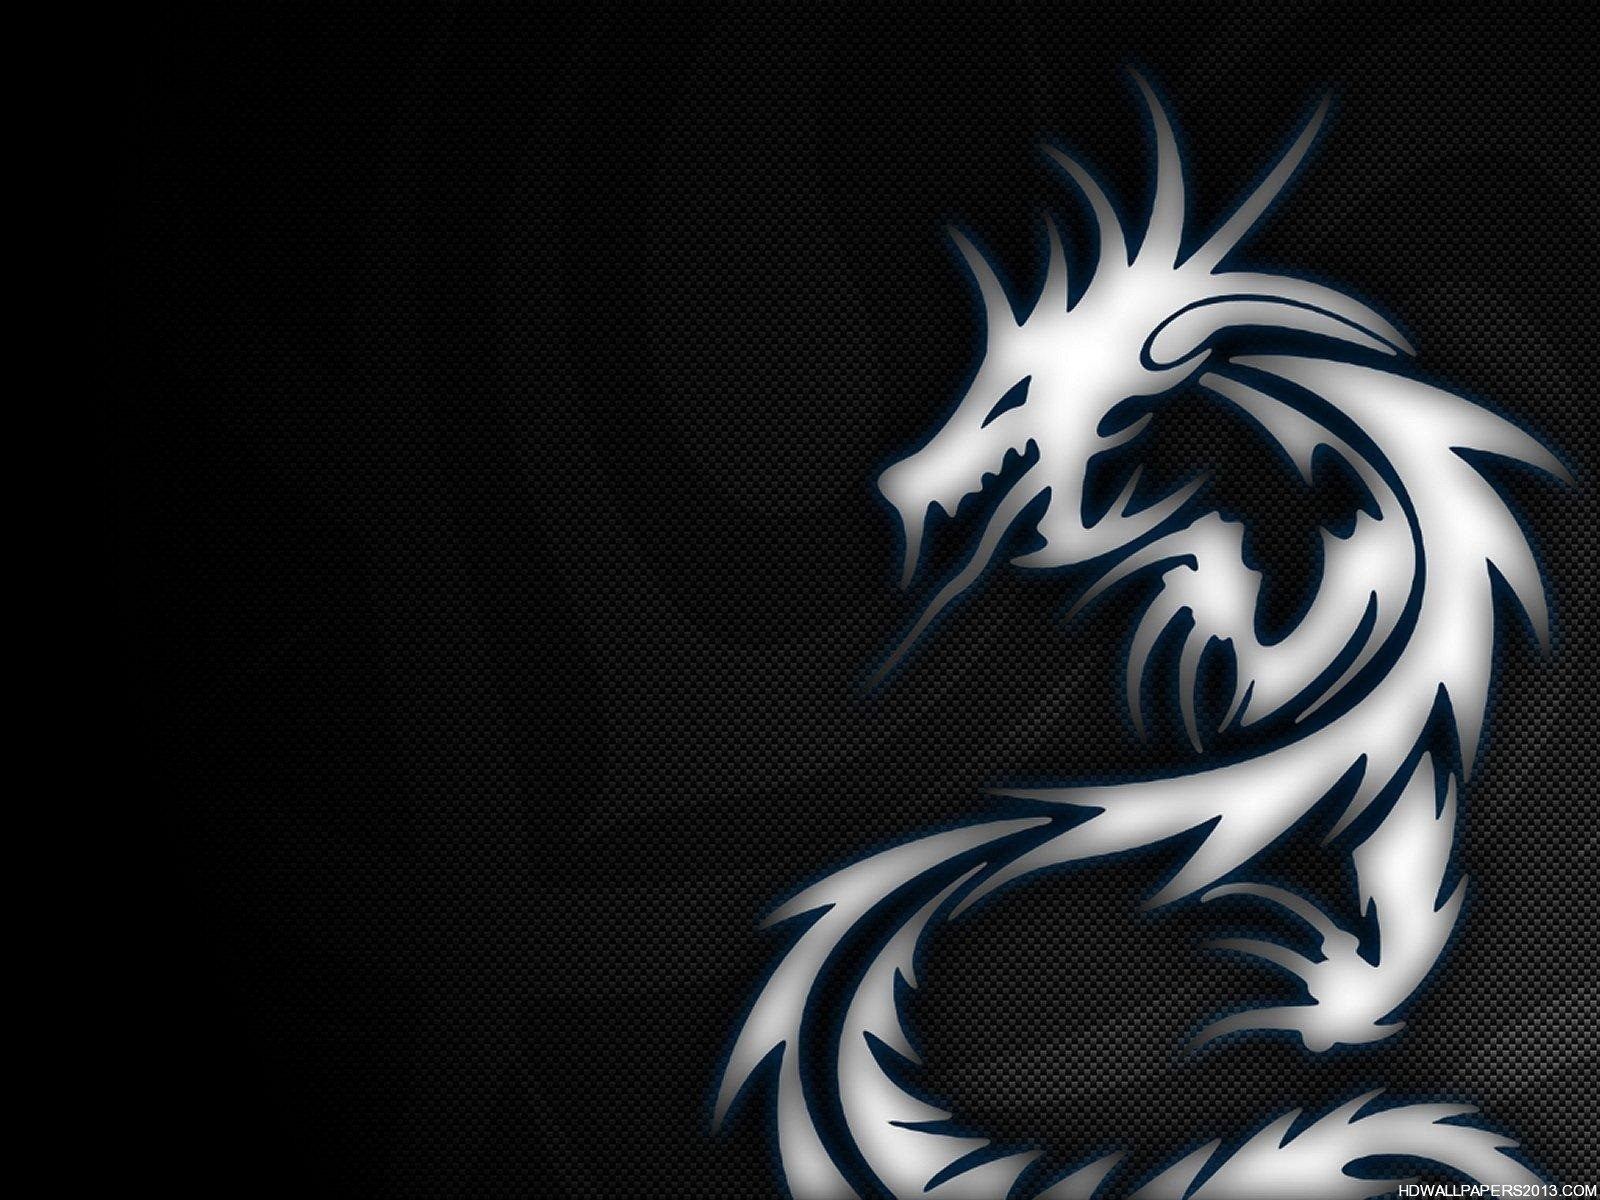 Dragon Desktop Wallpapers High Definition Wallpapers 1600x1200